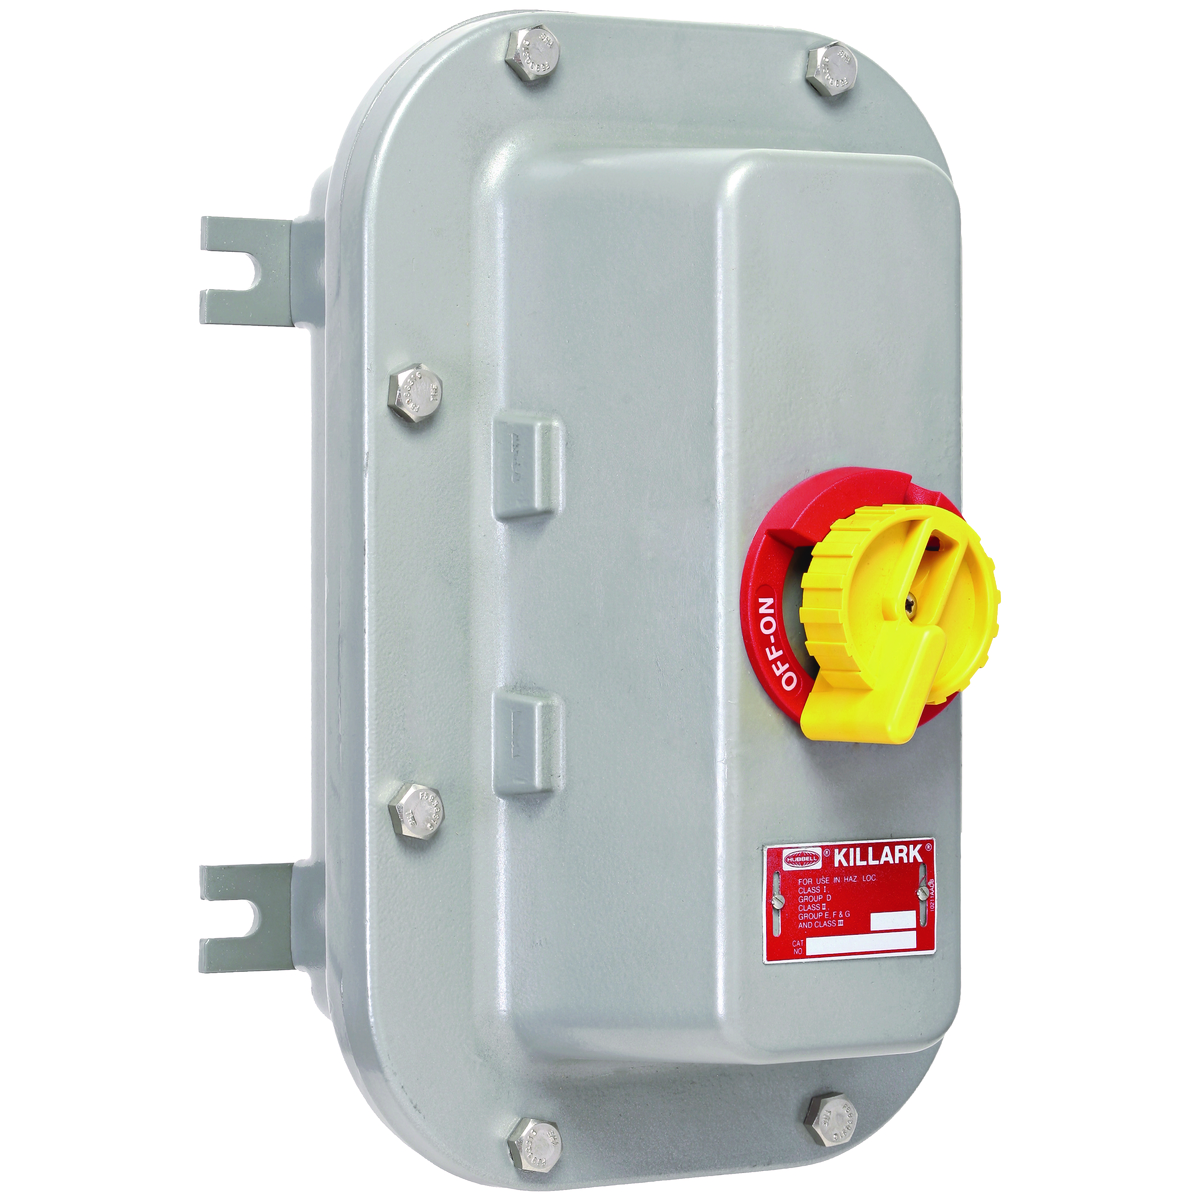 B7NFD Series Non-Fused Disconnect Switches